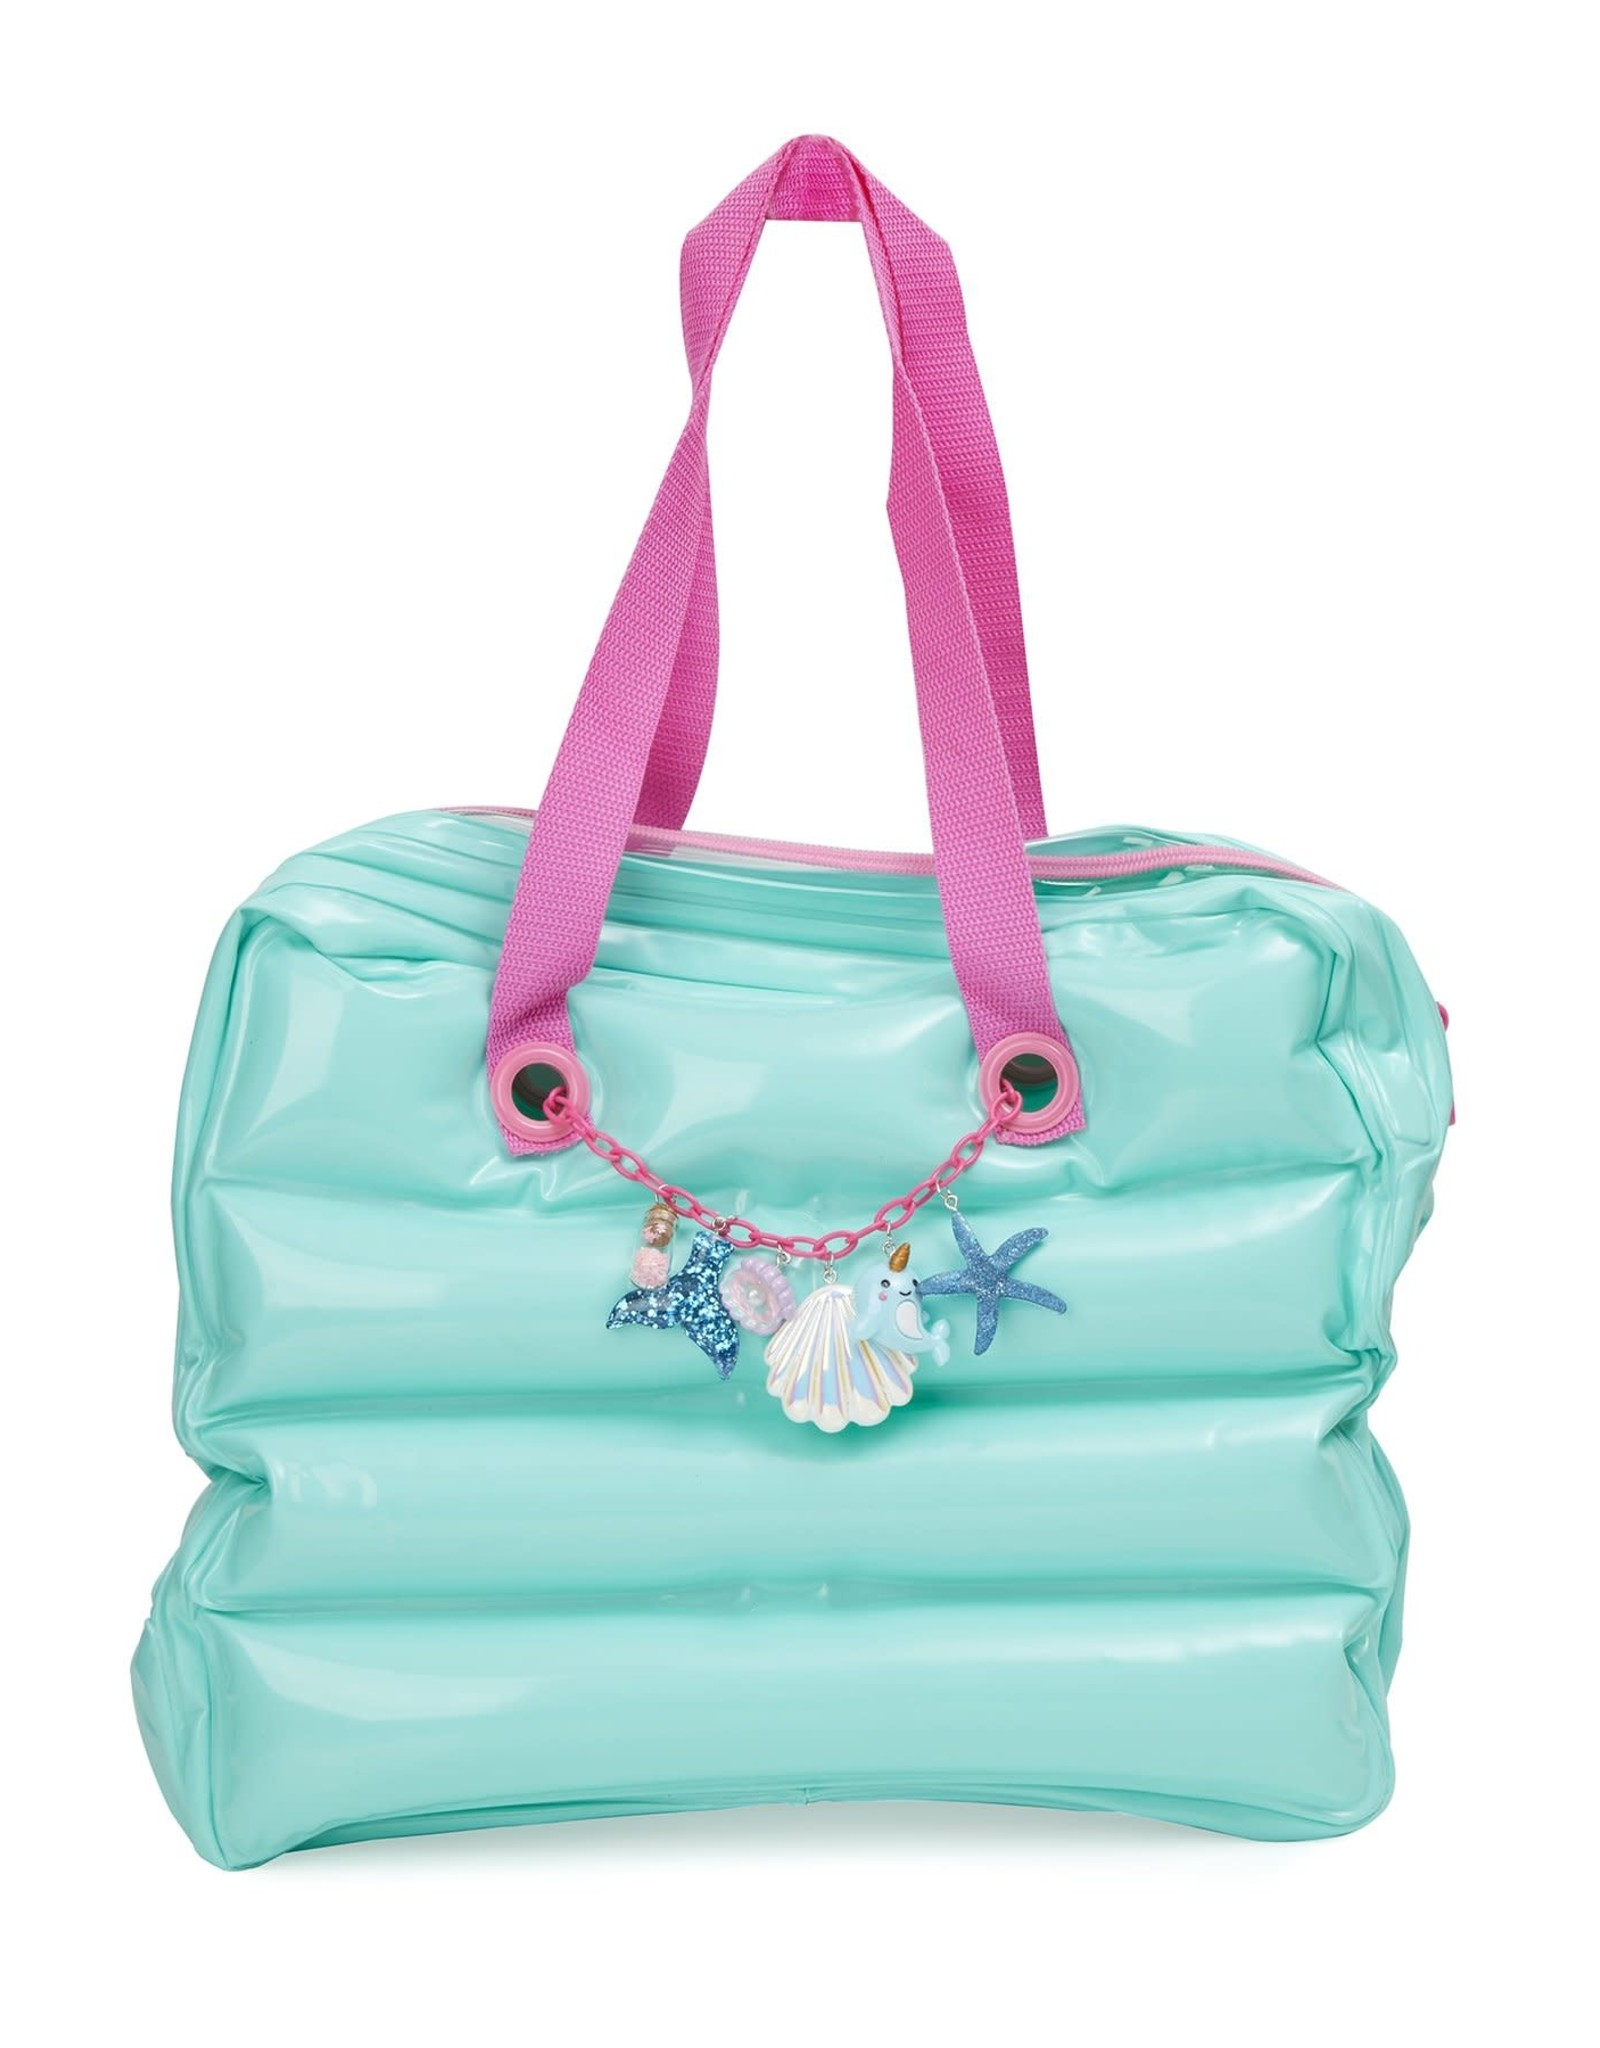 Bling2o Under The Sea Bag